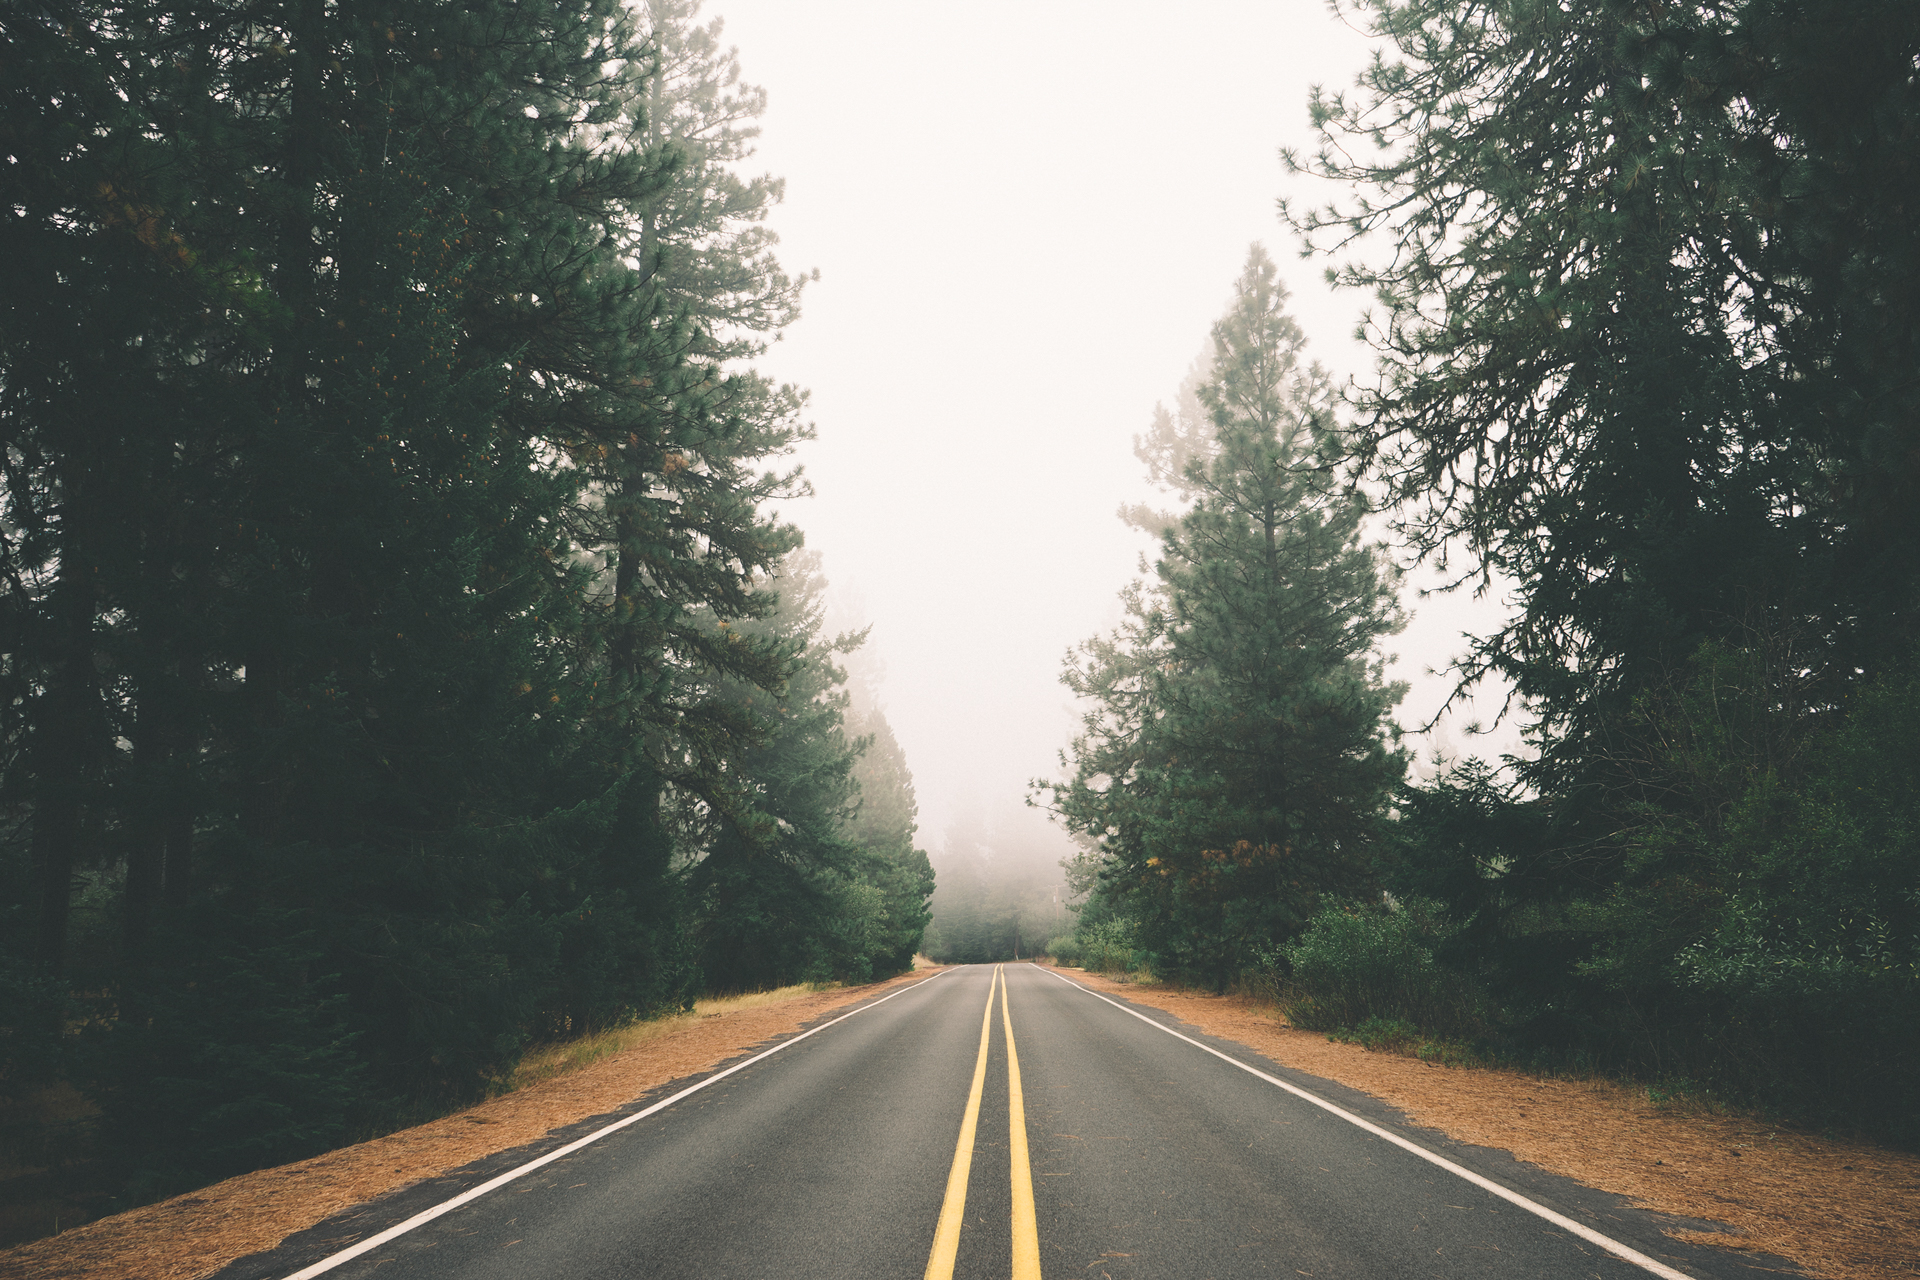 road-street-forest-fog.jpg